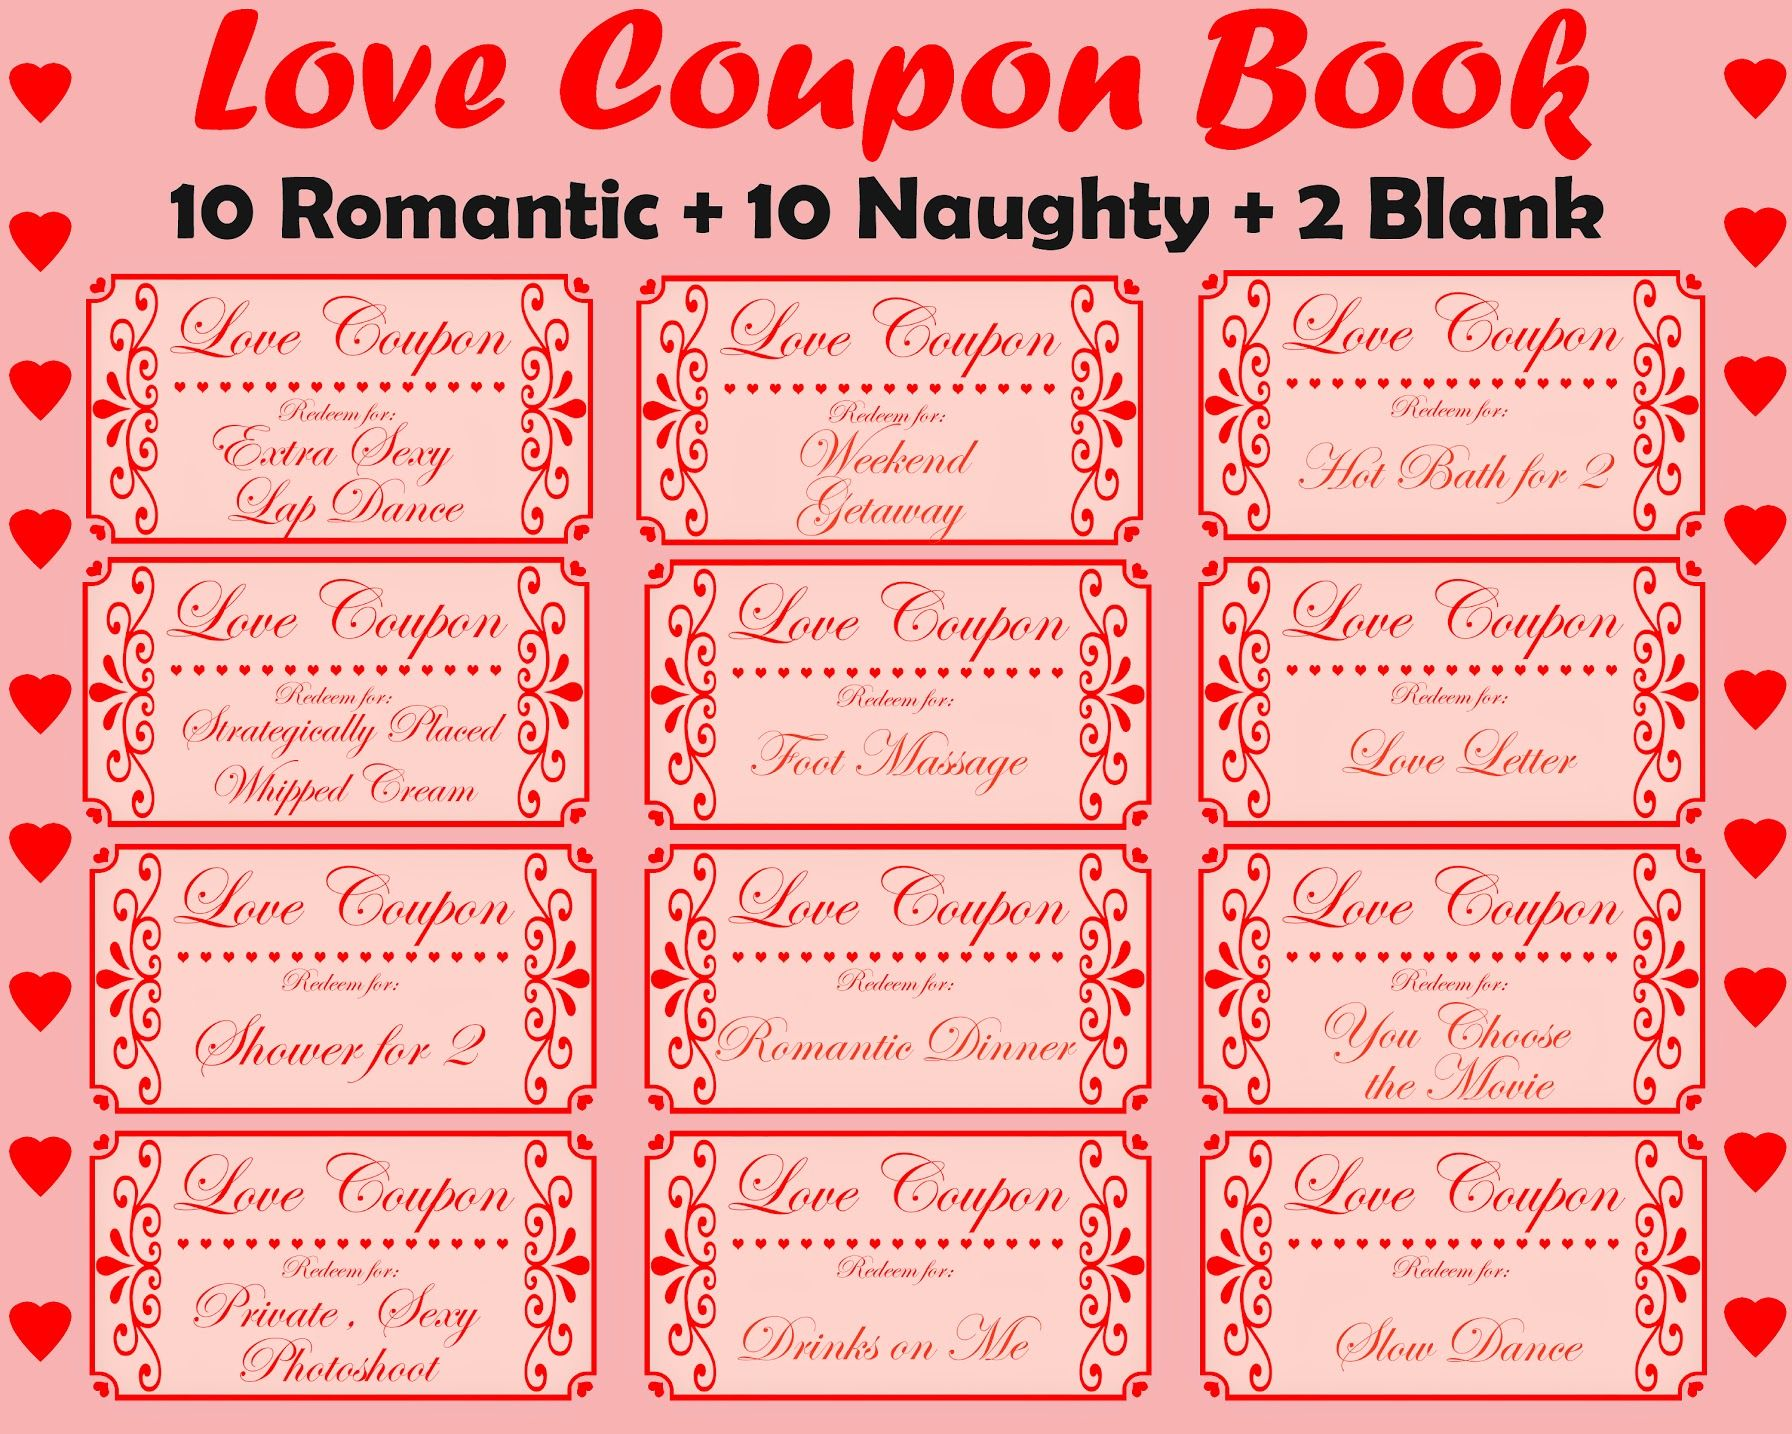 Love Coupon Book Printable Love Coupons Romantic Coupon Etsy Naughty Coupon Book Love Coupons Love Coupons For Her